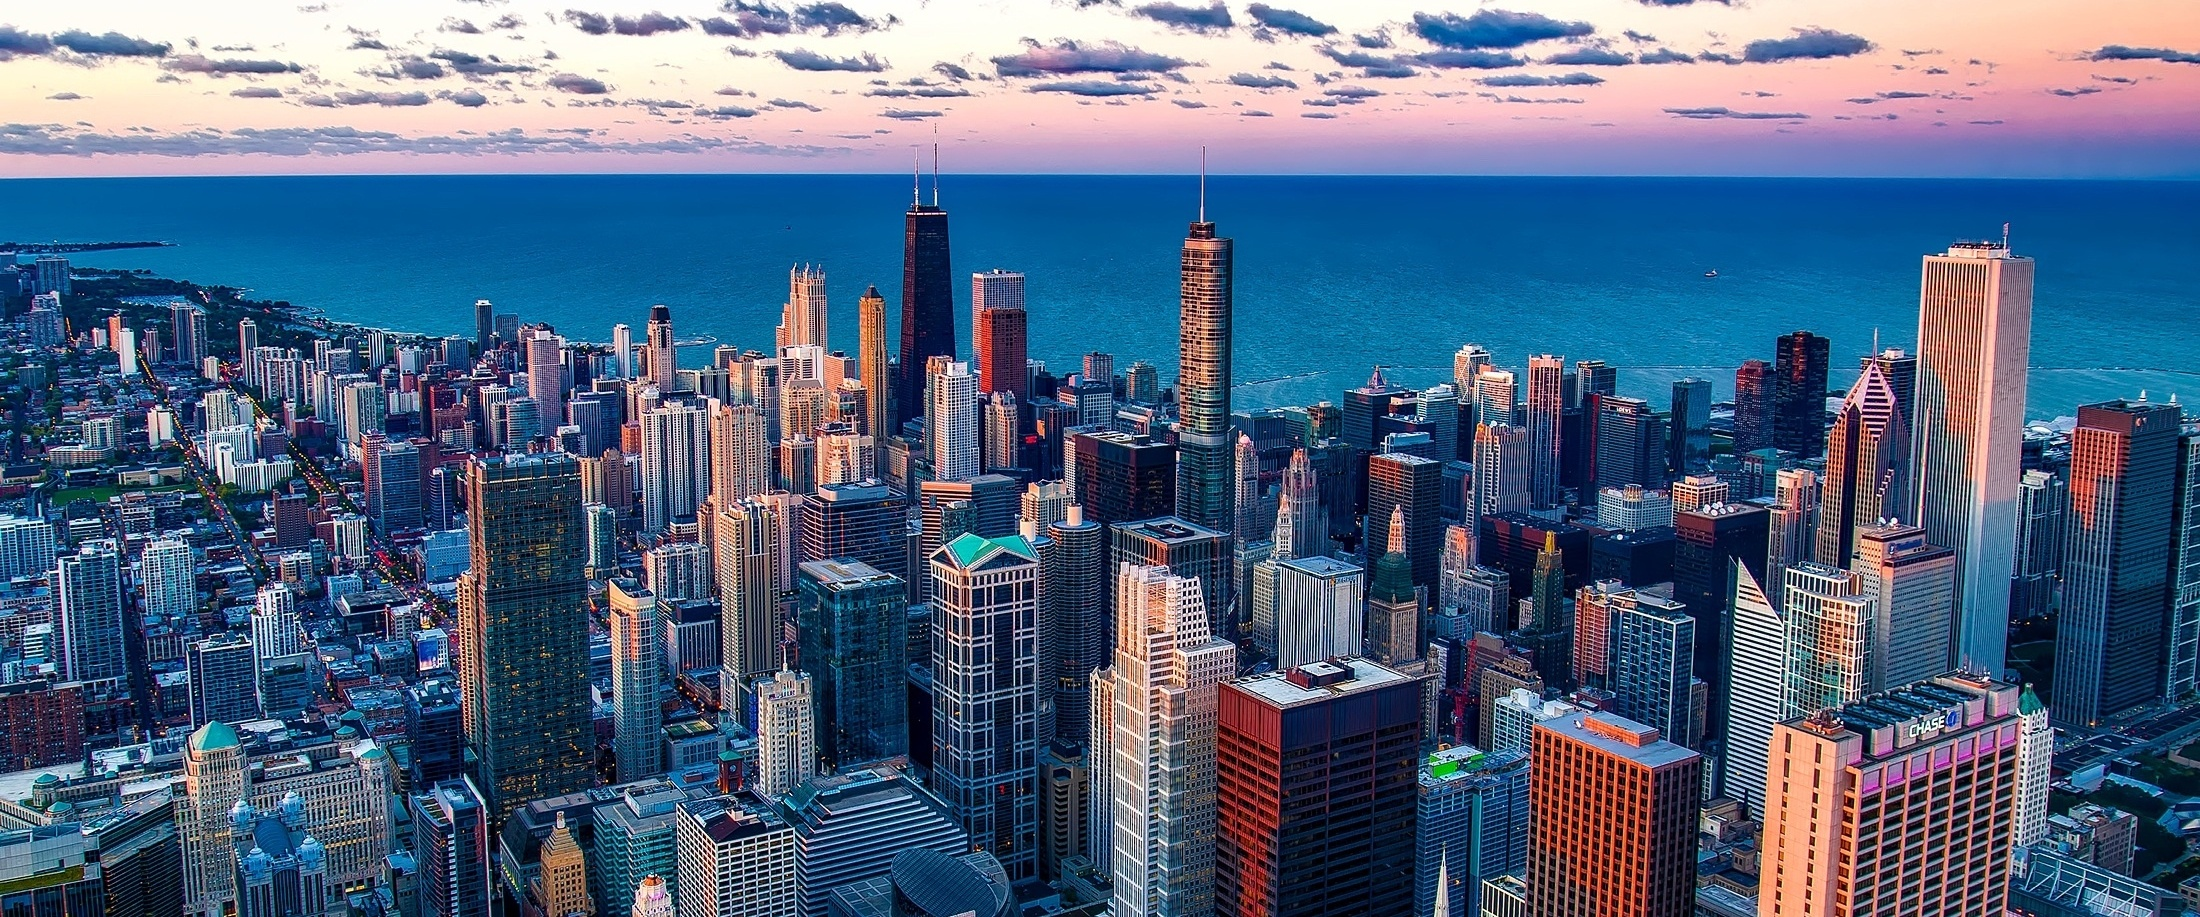 chicago-1791002-243562-edited.jpg